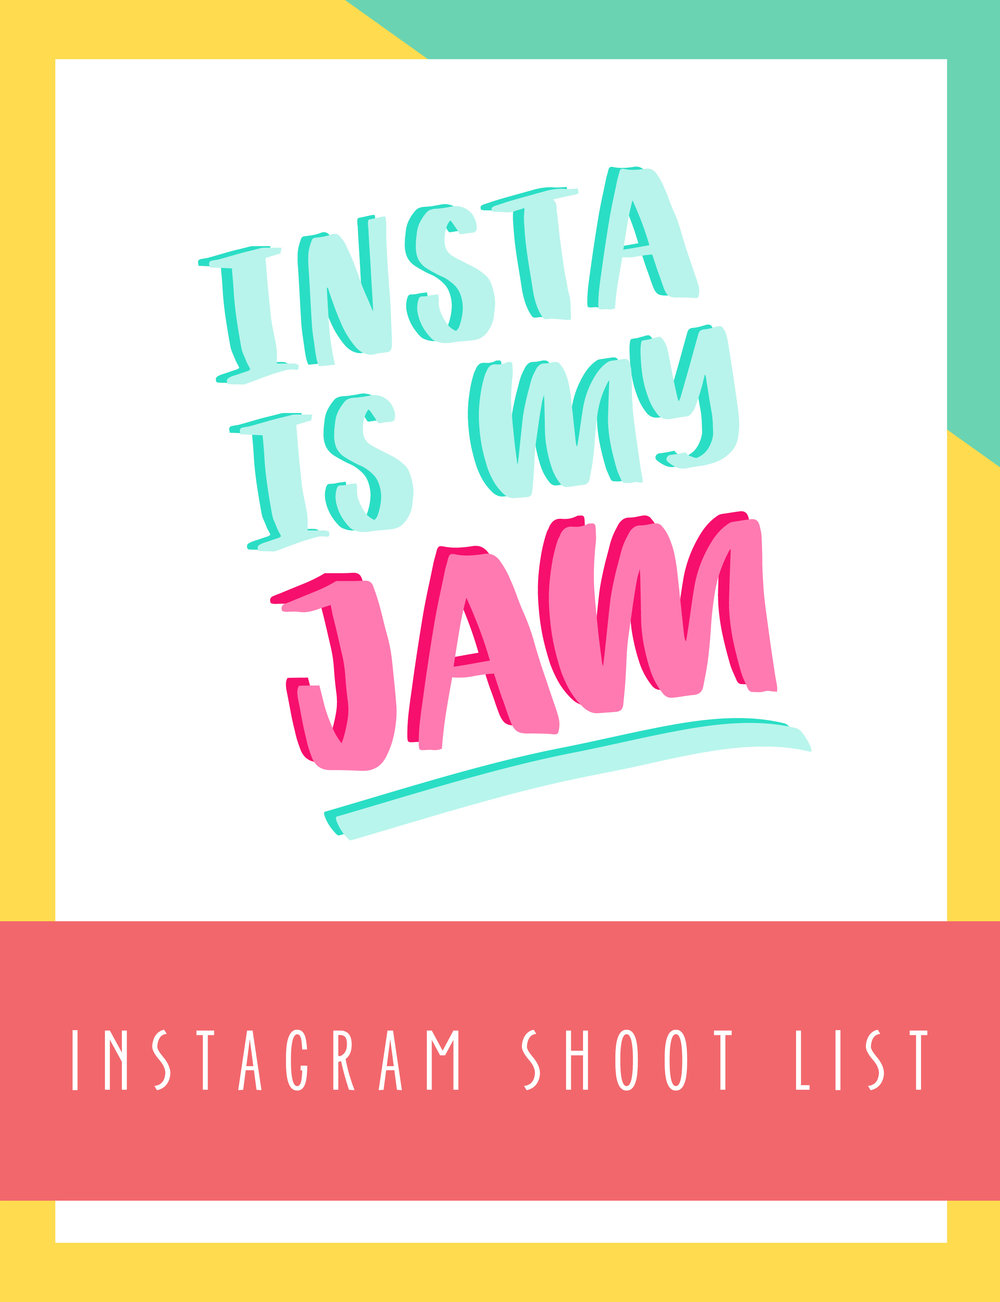 Bold & Pop Freebies Instagram is my Jam Instagram Shoot List